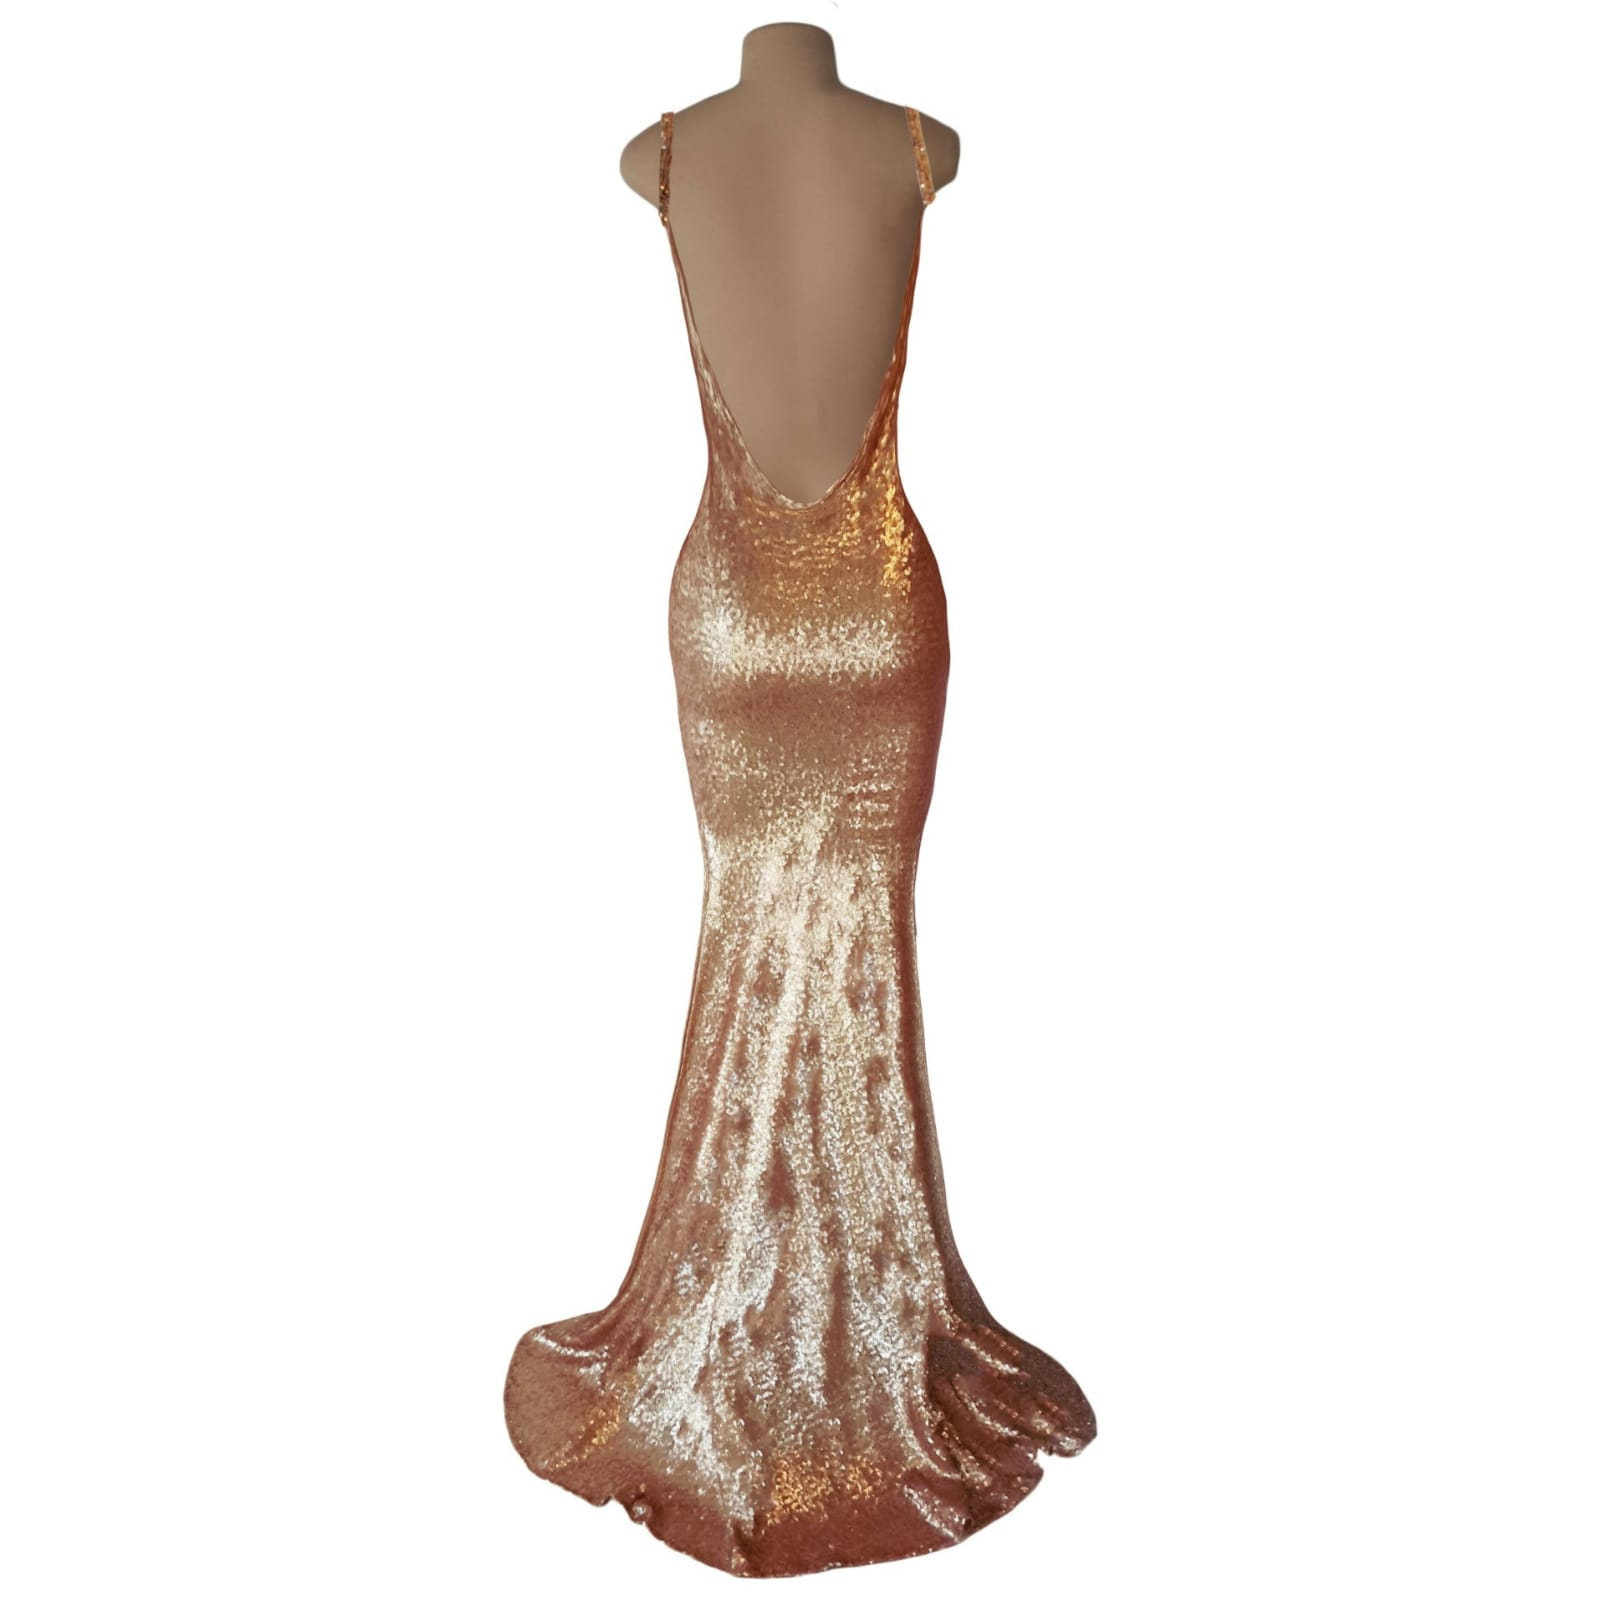 Rose gold long tight evening dress 5 rose gold long tight evening dress v neckline & low v open back with thin shoulder straps.